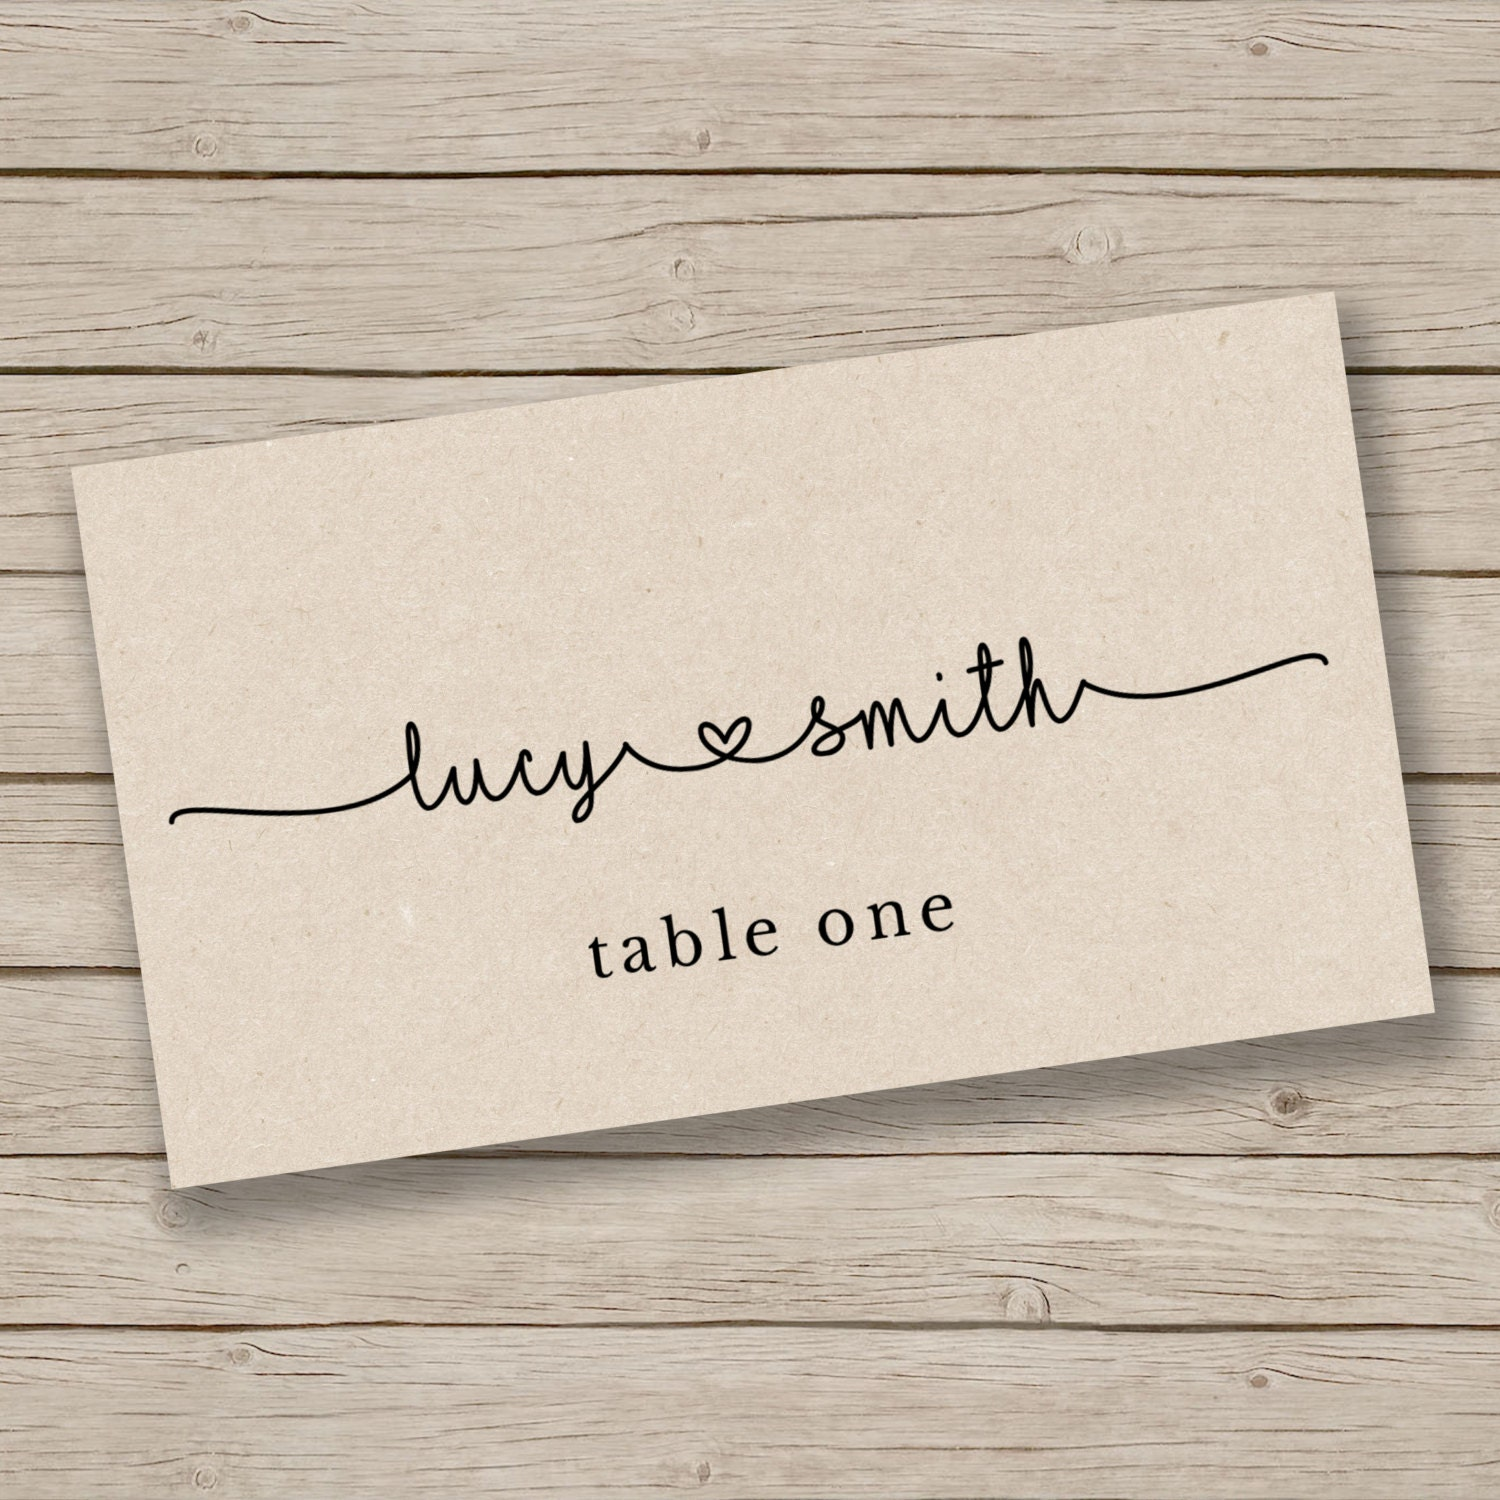 It's just an image of Declarative Printable Escort Cards